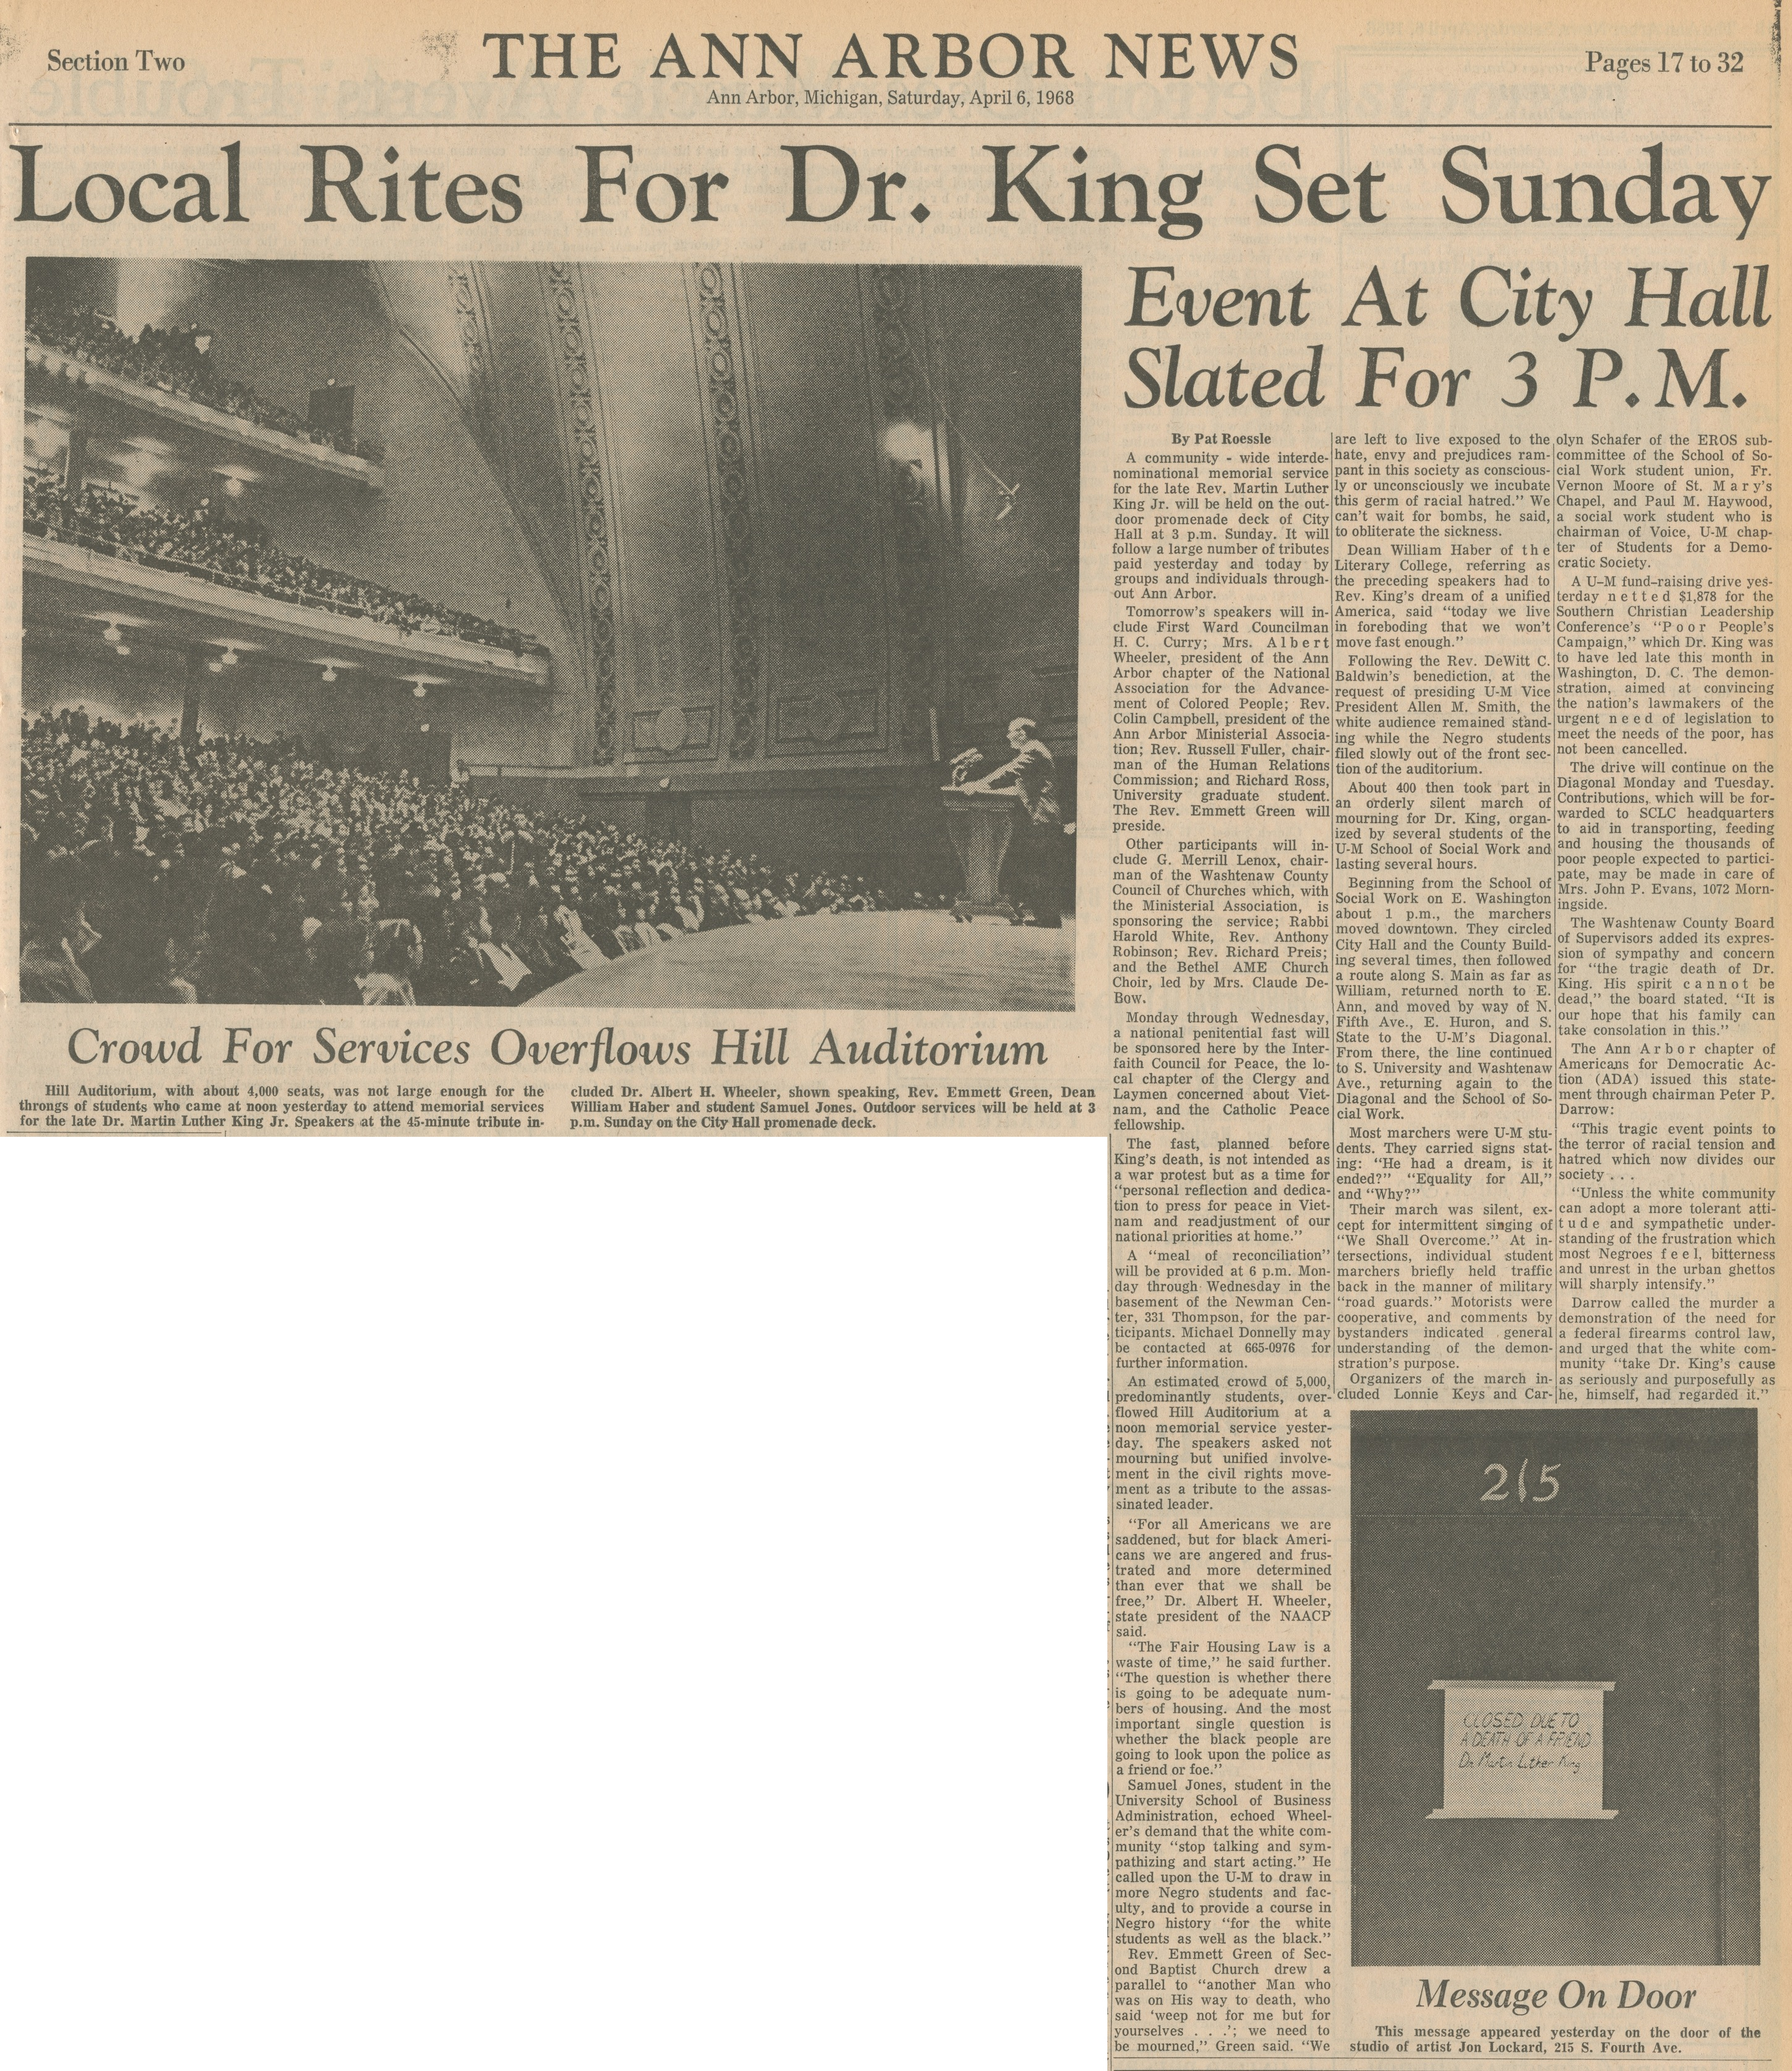 Local Rites For Dr. King Set Sunday - Event At City Hall Slated For 3 P.M. image